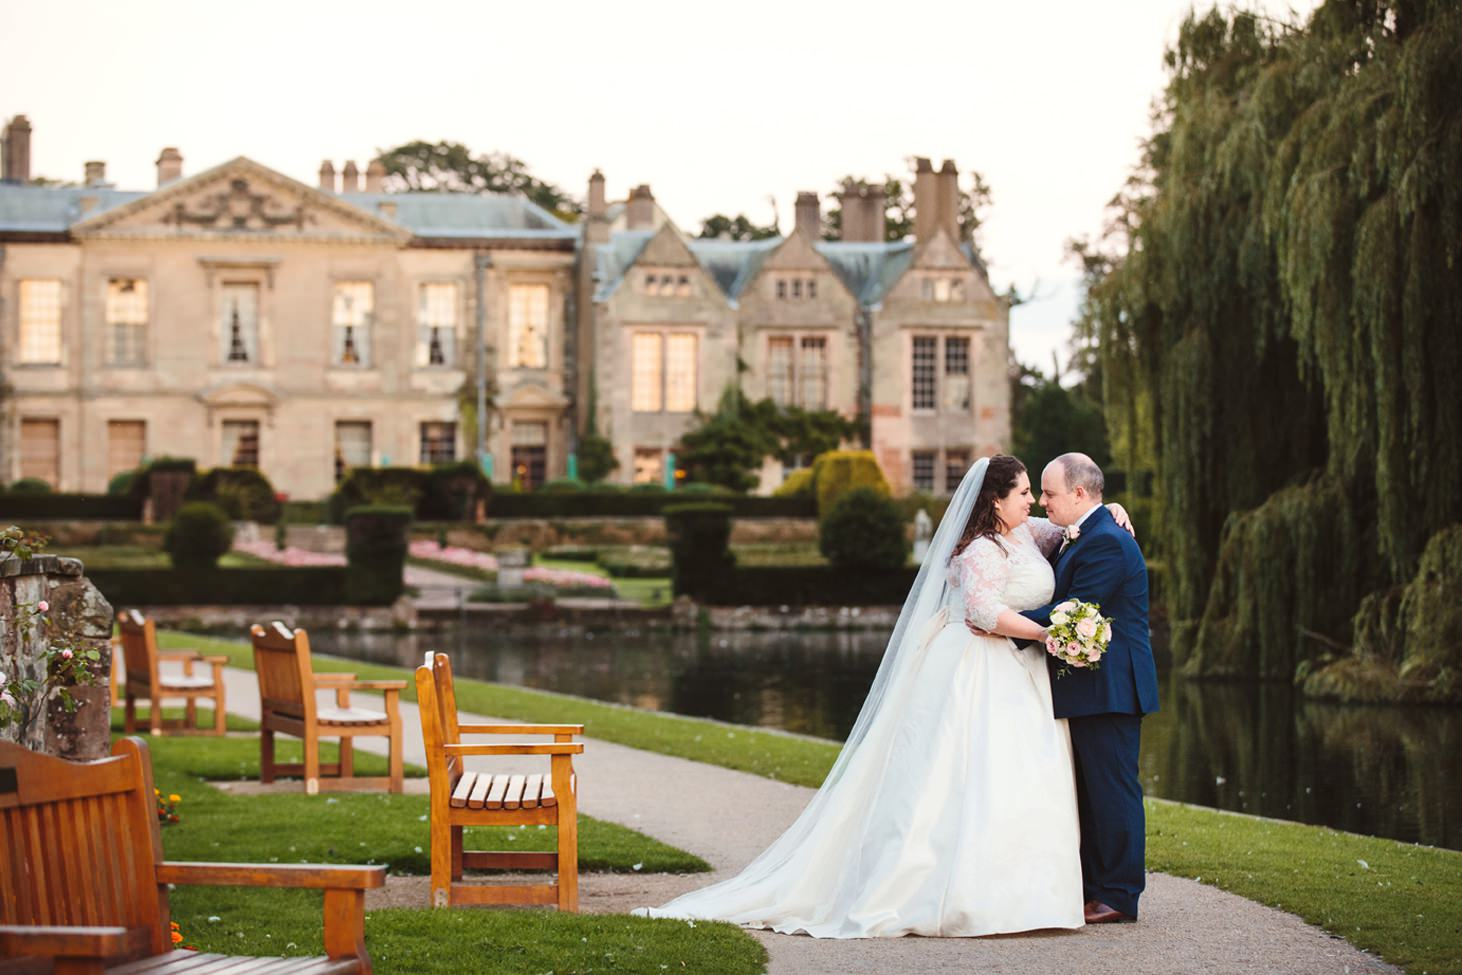 Coombe Abbey wedding photography Sarah Ann Wright 098